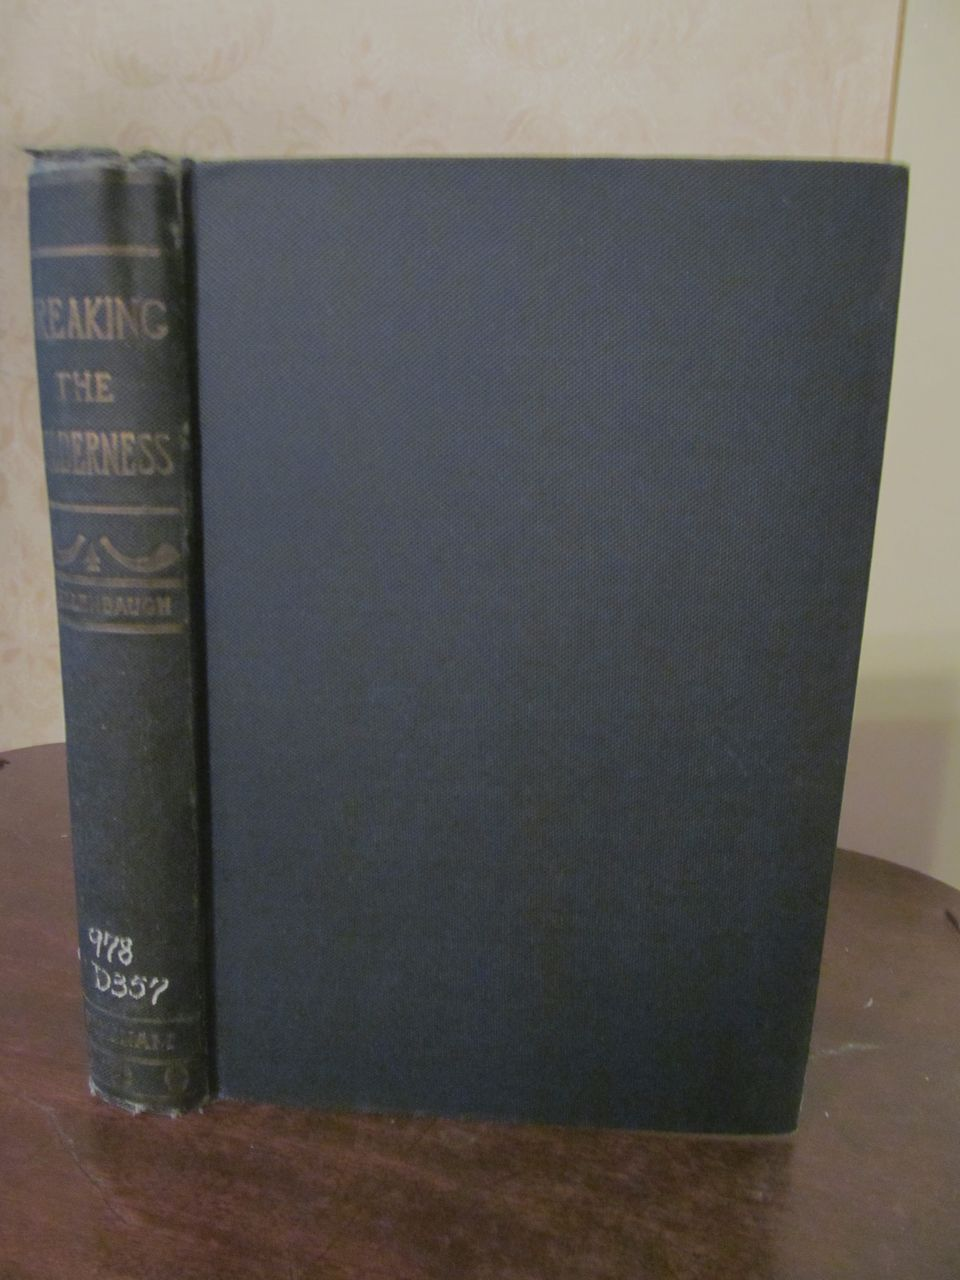 1905 Breaking the Wilderness, Expedition West of the Mississippie, by Frederick S Dellenbaugh, Publ G P Putnam's Sons